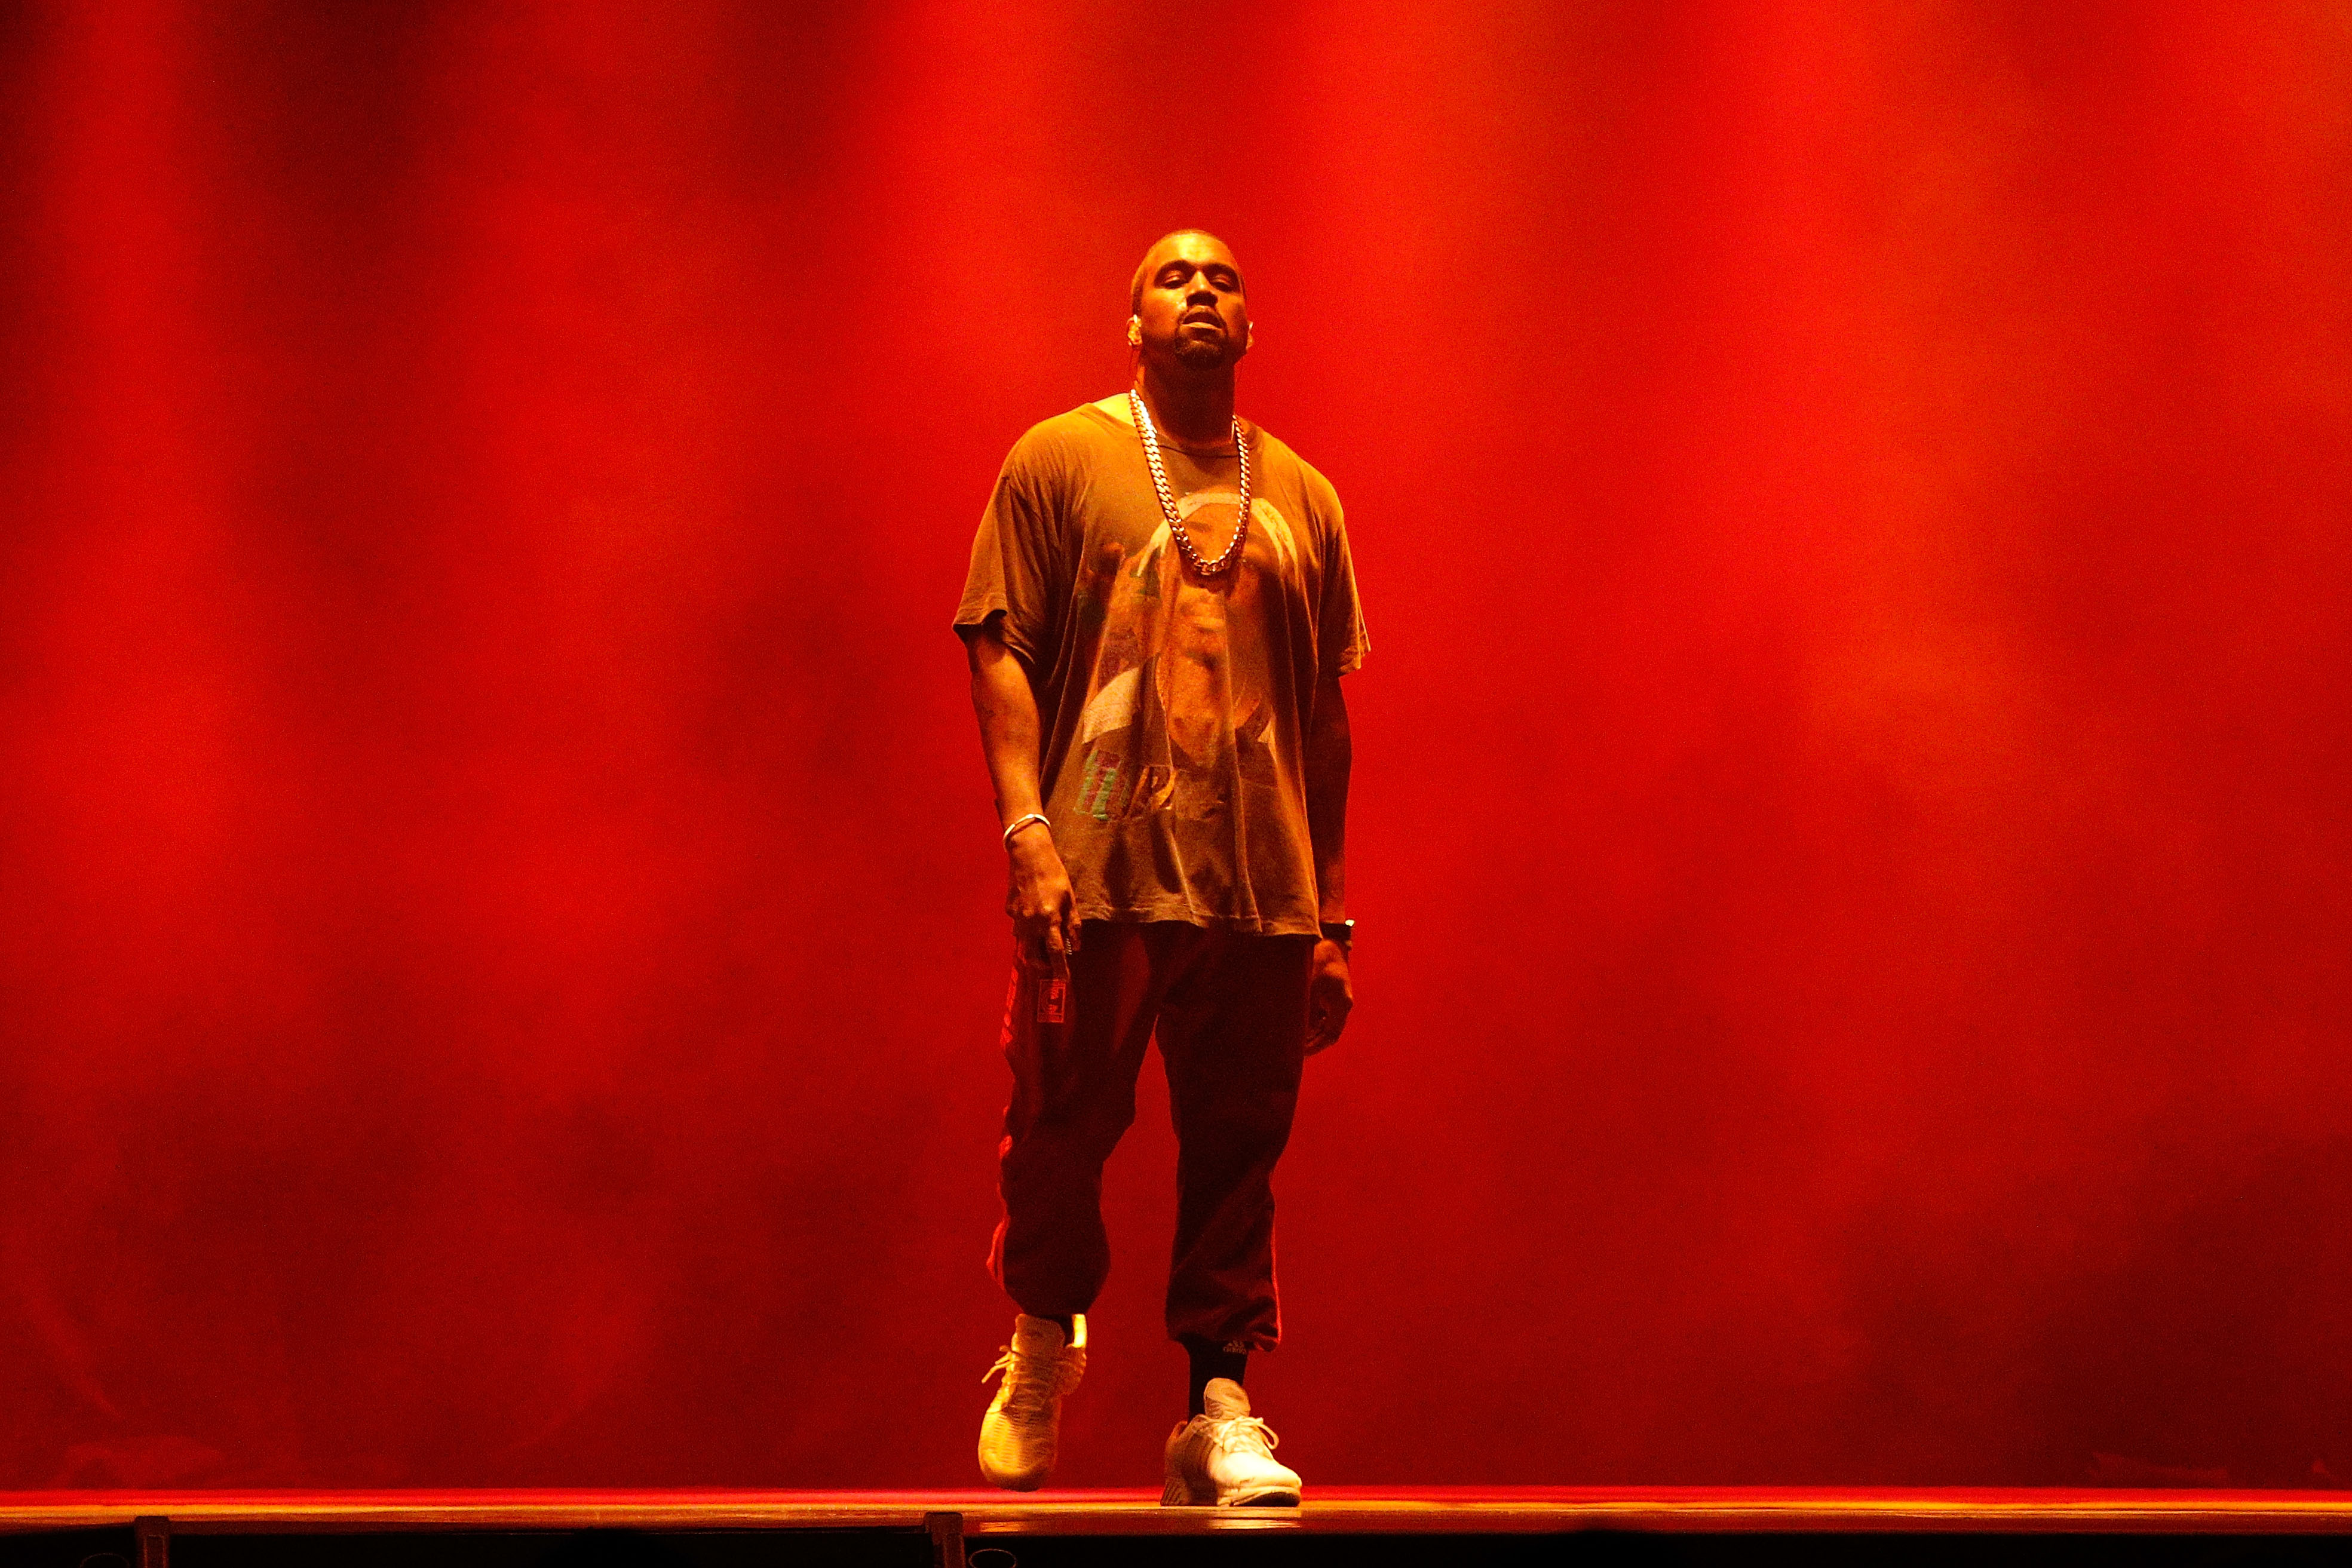 You Can Stream Kanye West's New Album YE for Free. Here's How to Listen